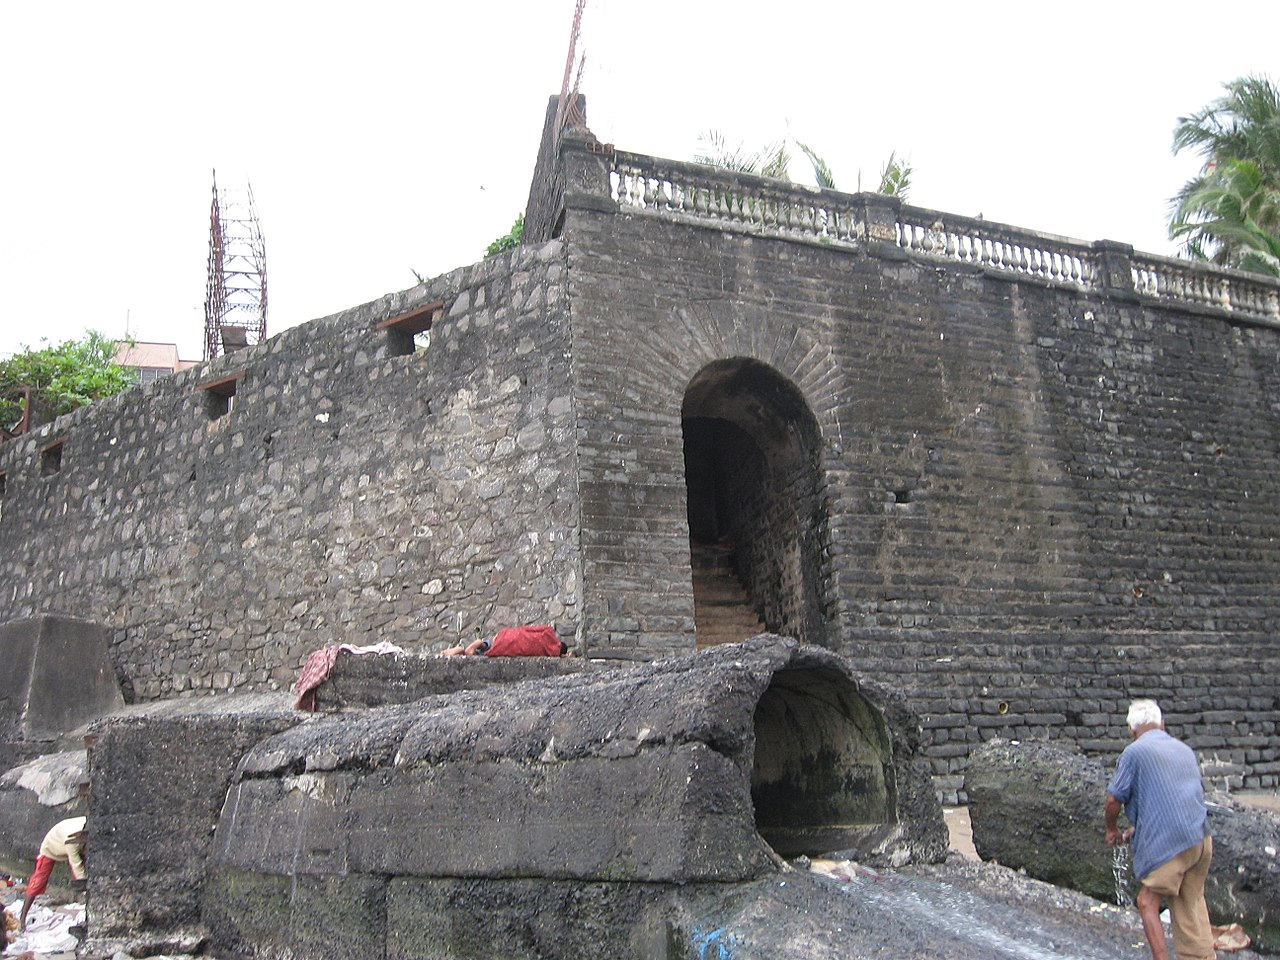 Visit Mahim Fort: The One That Is Encroached